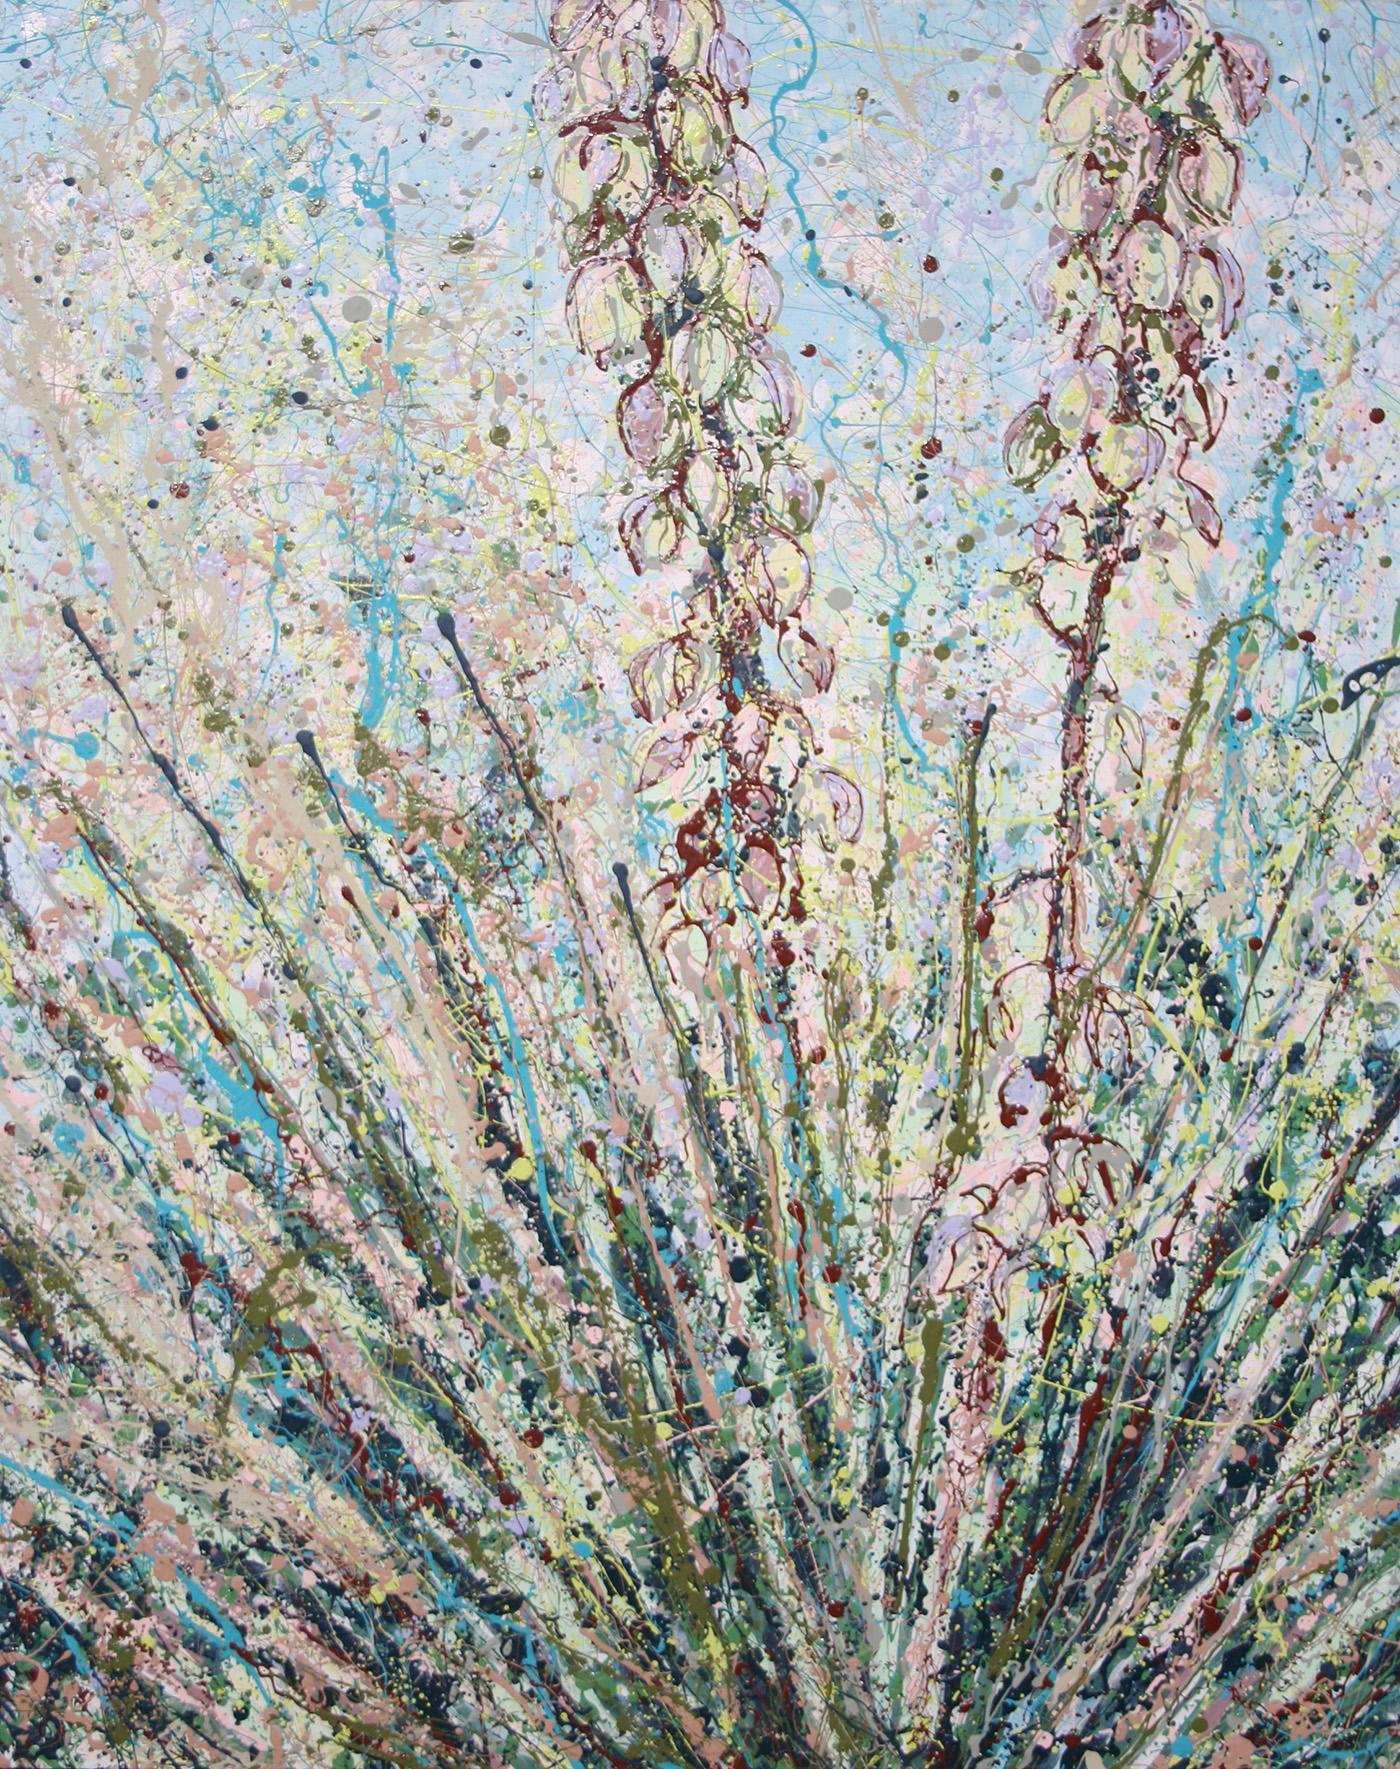 Yucca Bloom Latex Enamel Painting on Gallery Wrapped Canvas by Fort Collins, Colorado Artist Lisa Cameron Russell